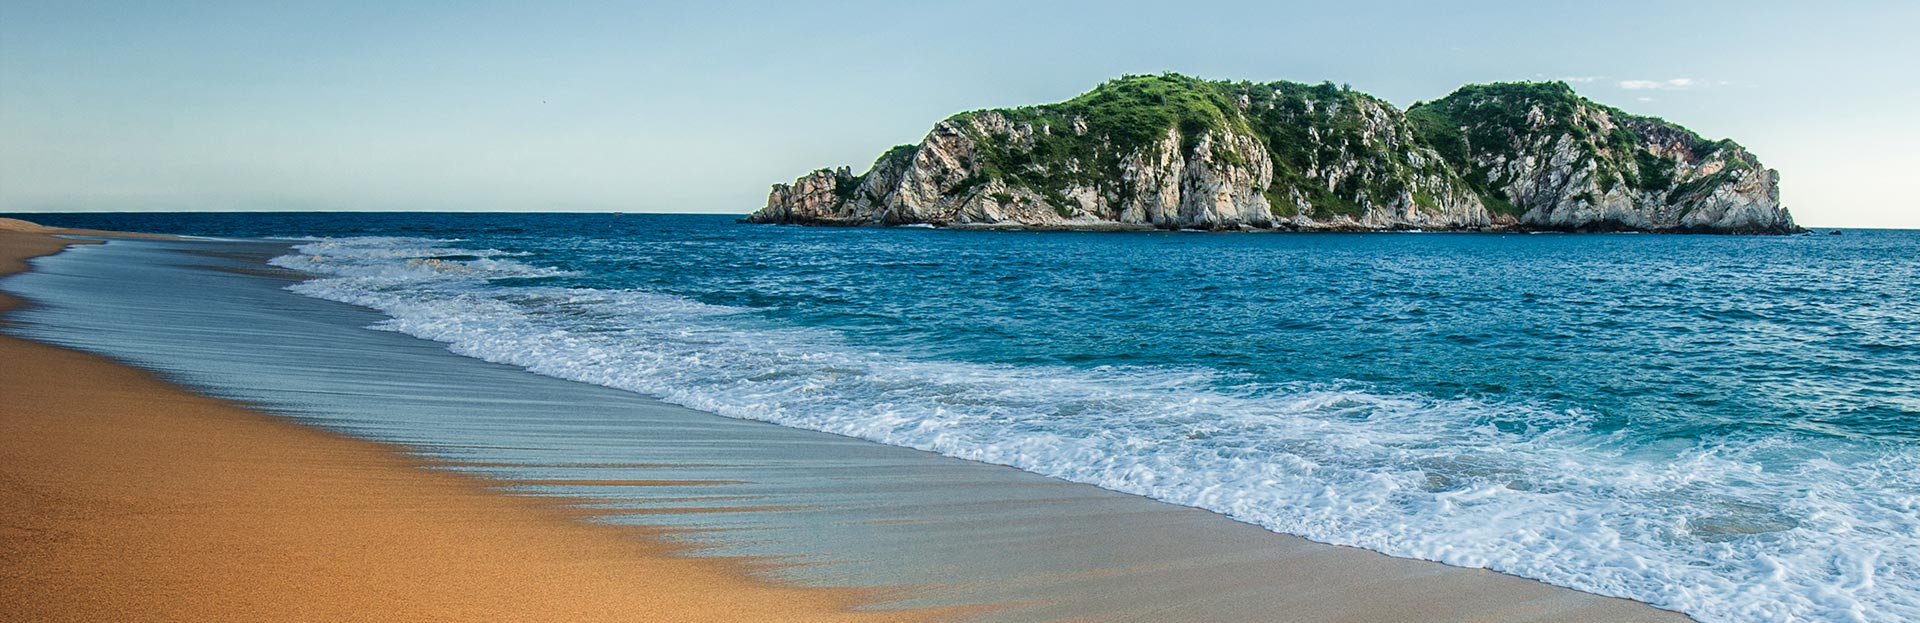 All inclusive vacations from edmonton to huatulco mexico